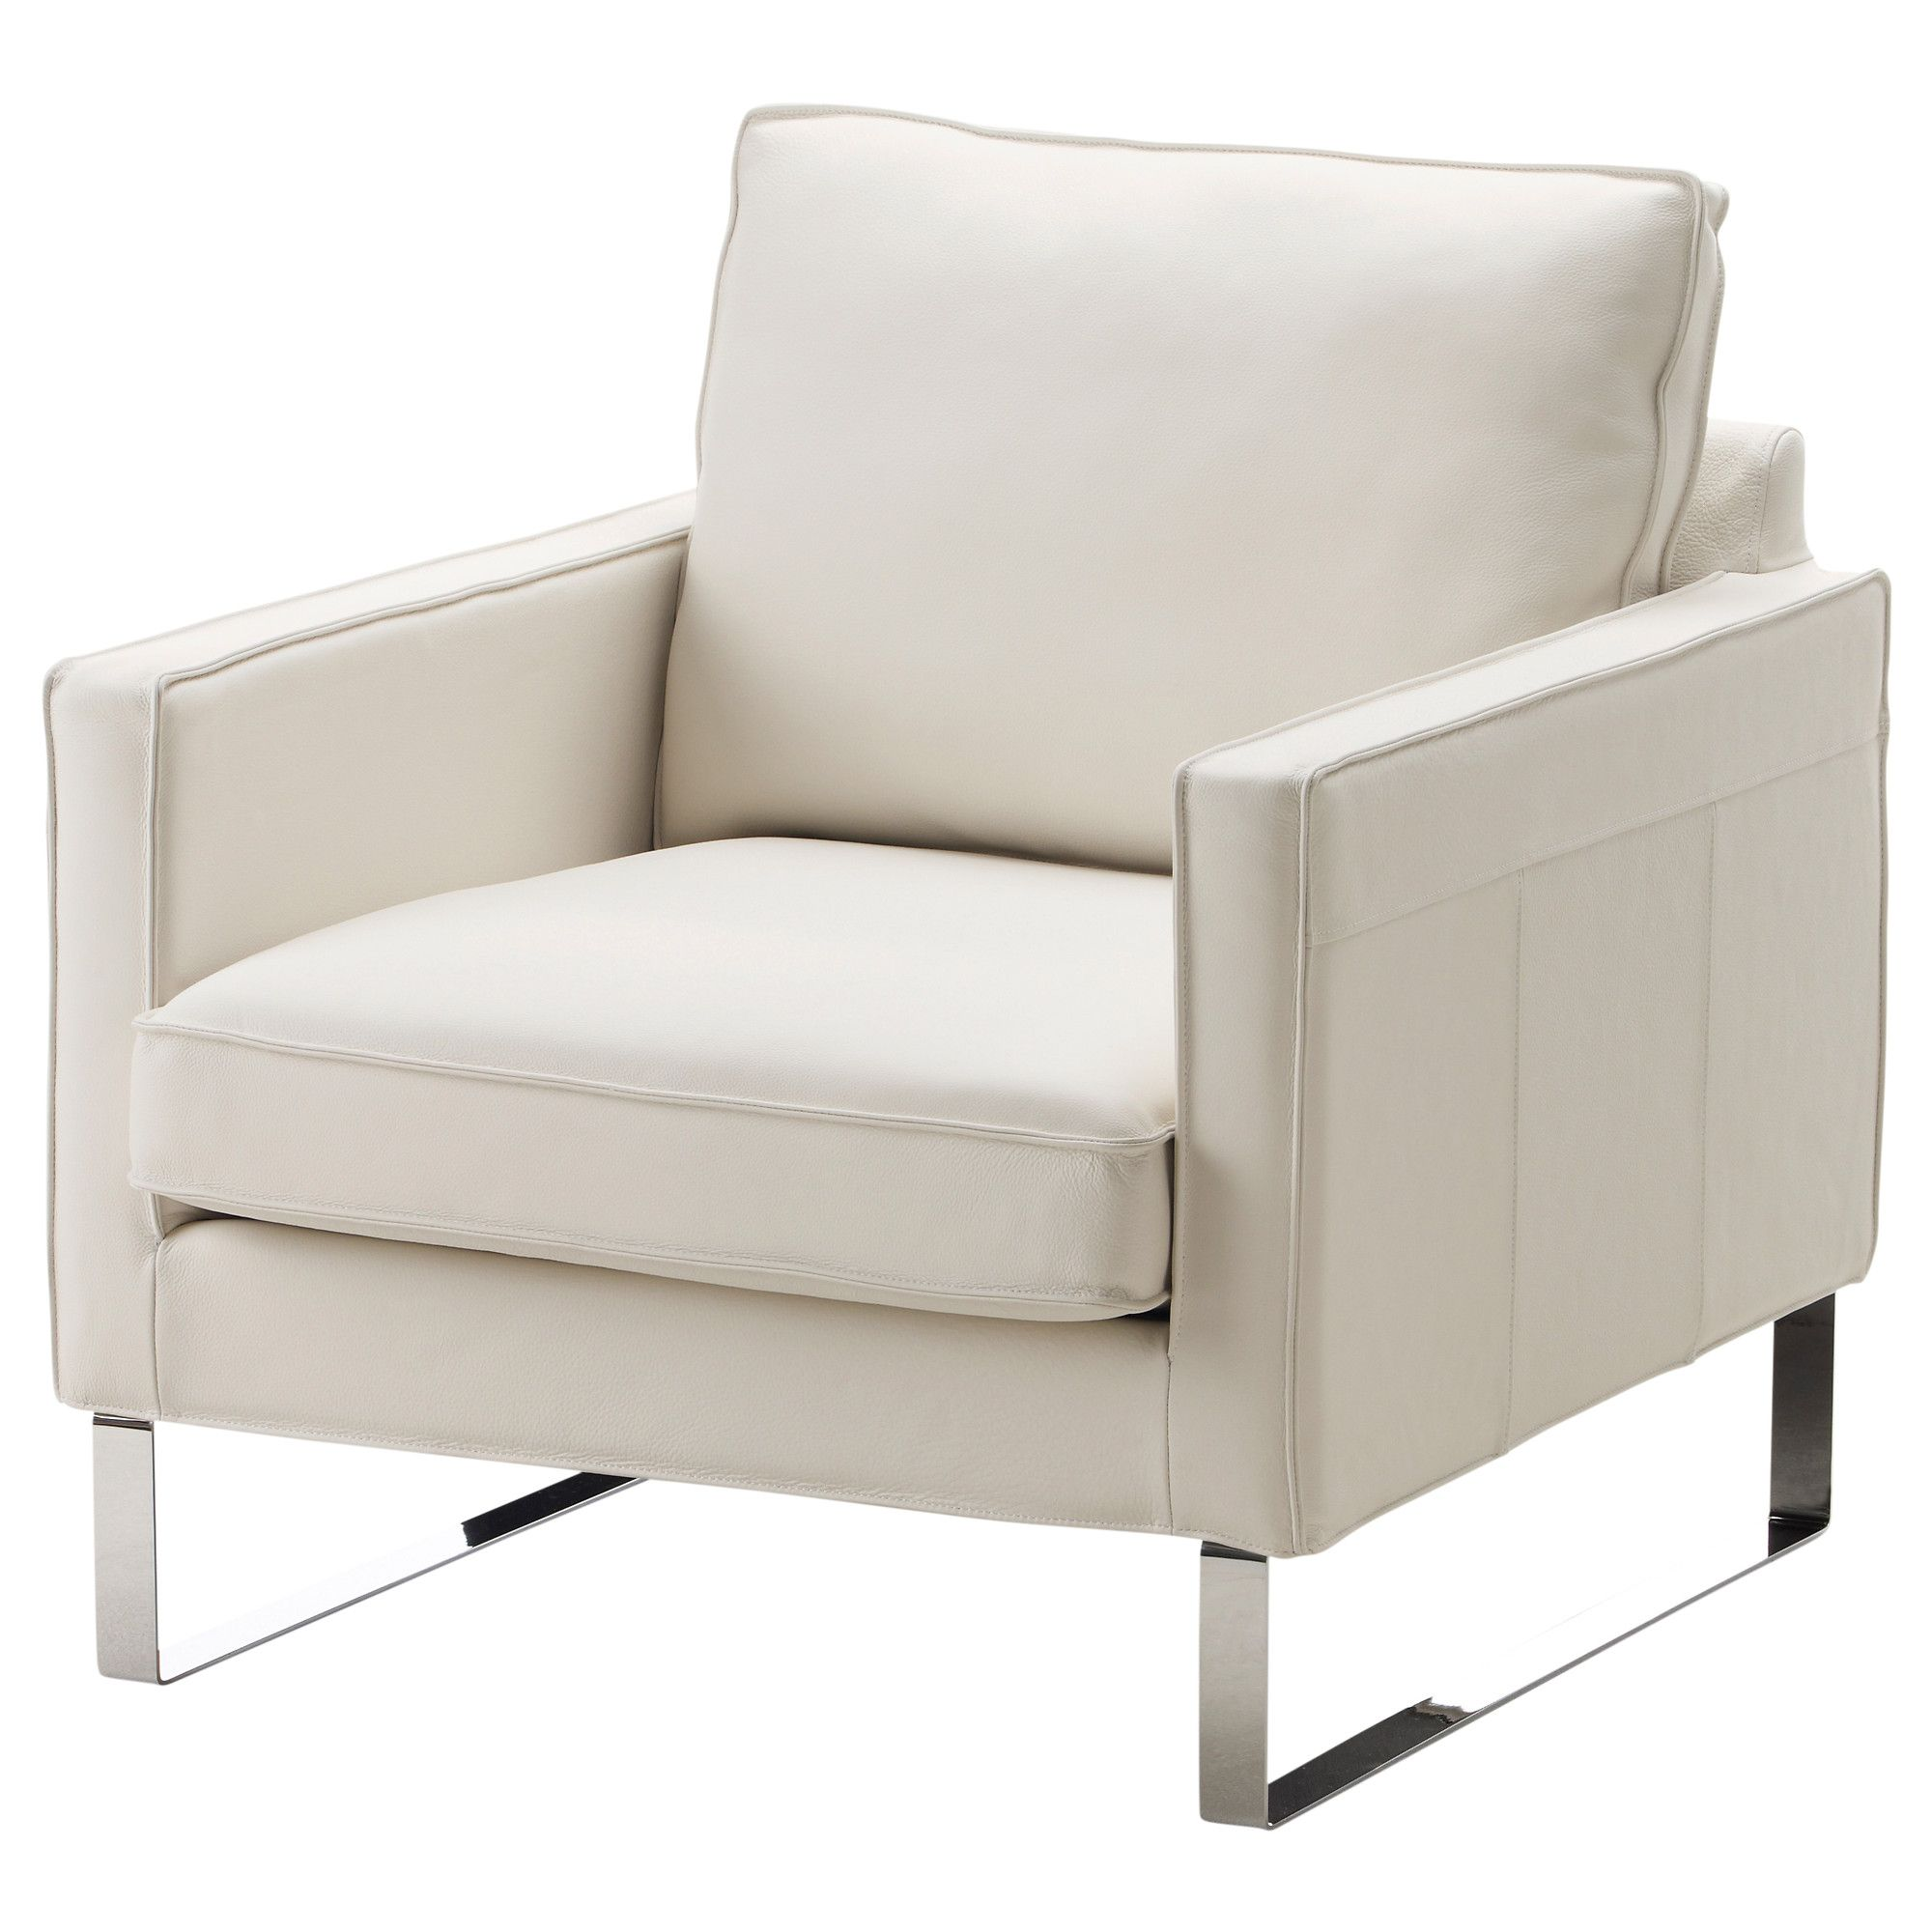 Ikea Mellby Sessel Ikea Mellby Chair Grann White Soft Hardwearing And Easy